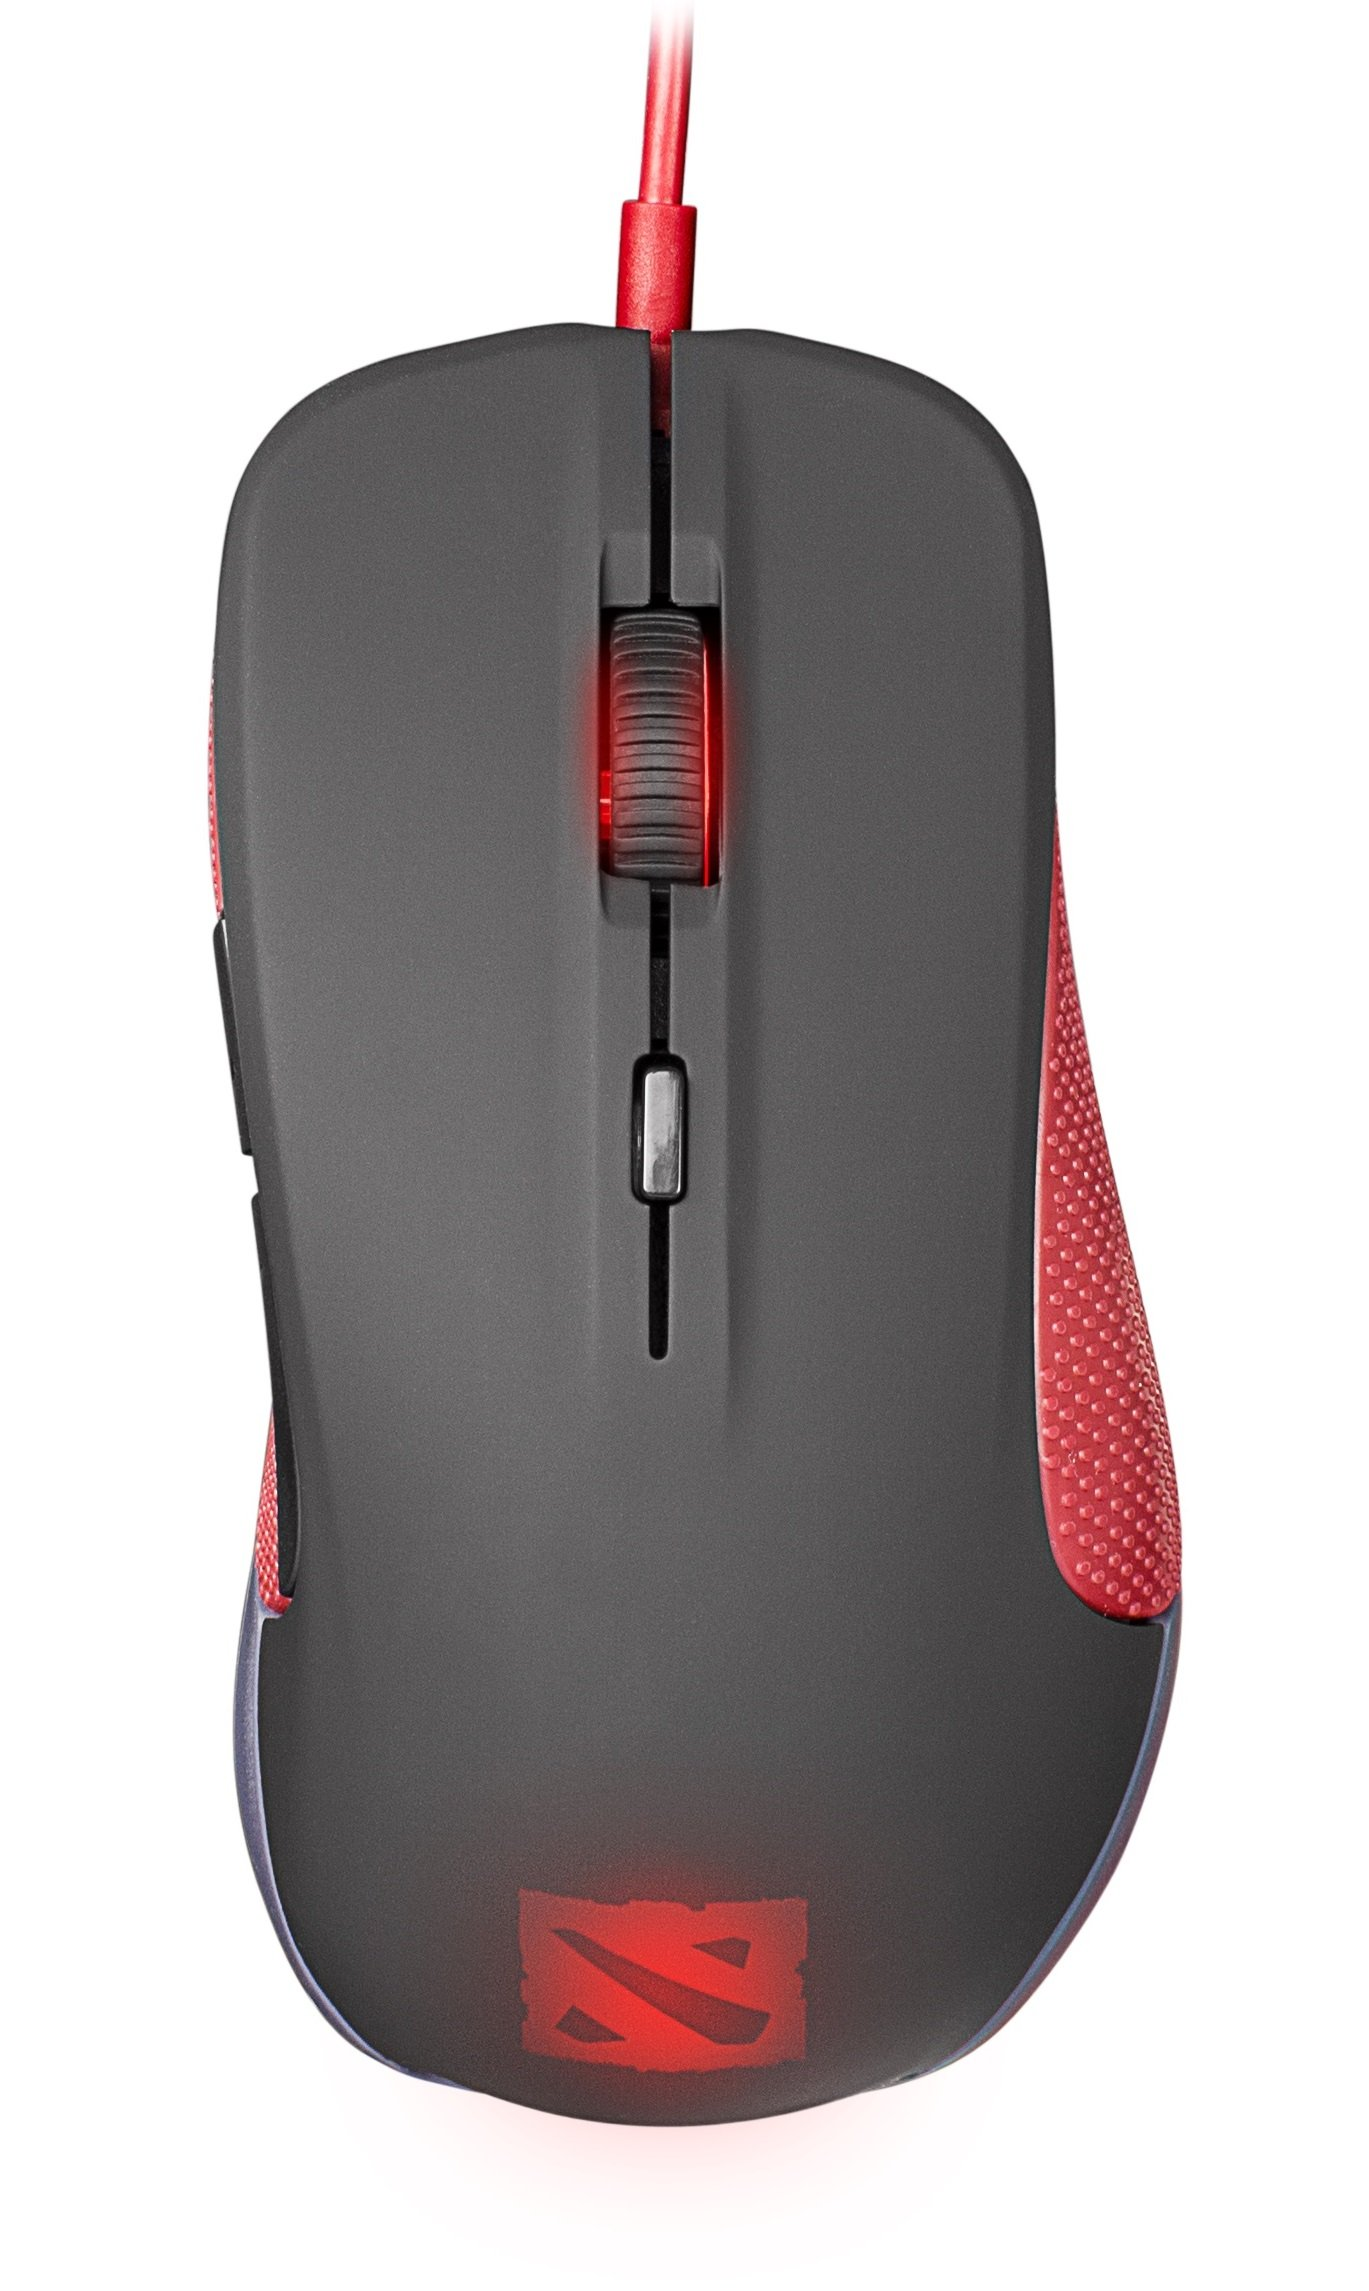 SteelSeries Rival Optical Mouse Dota 2 Edition ゲーミングマウス 62273